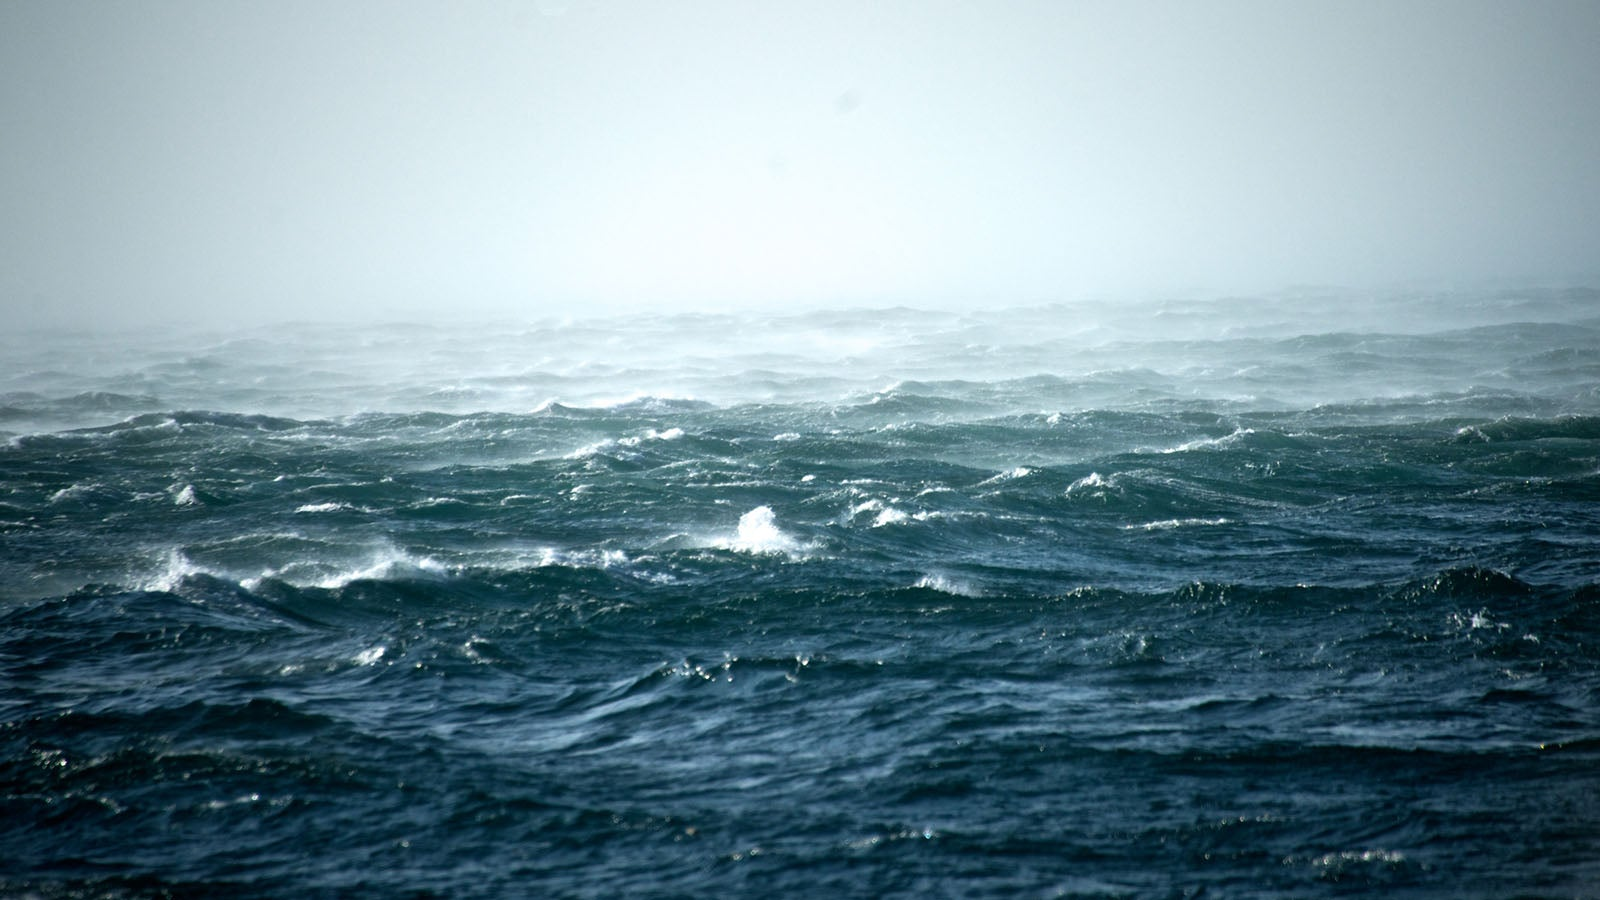 A photo of the ocean